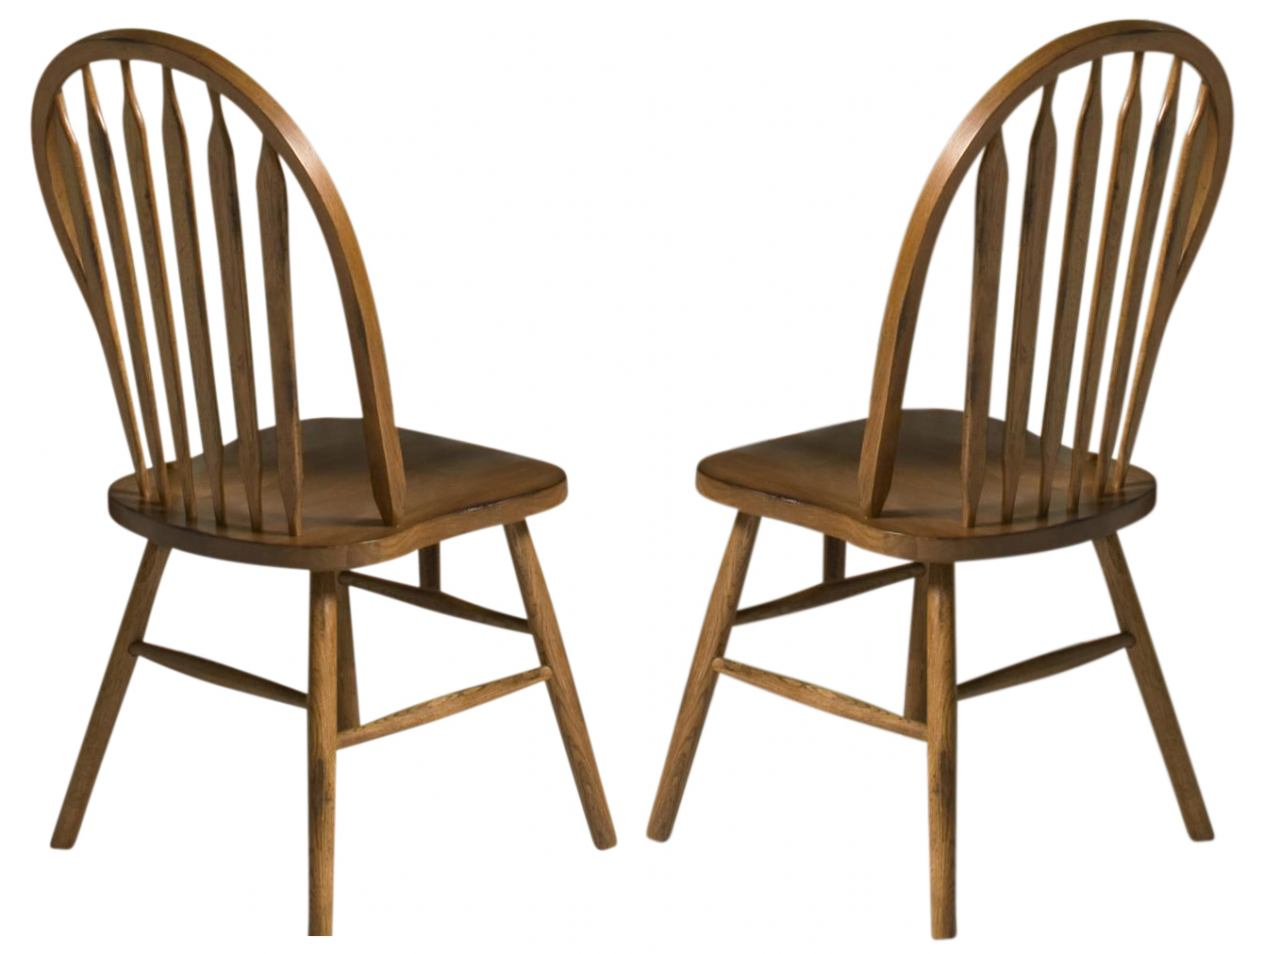 Intercon Furniture Classic Oak Plain Arrow Back Side Chair (Set of 2) in Burnished Rustic